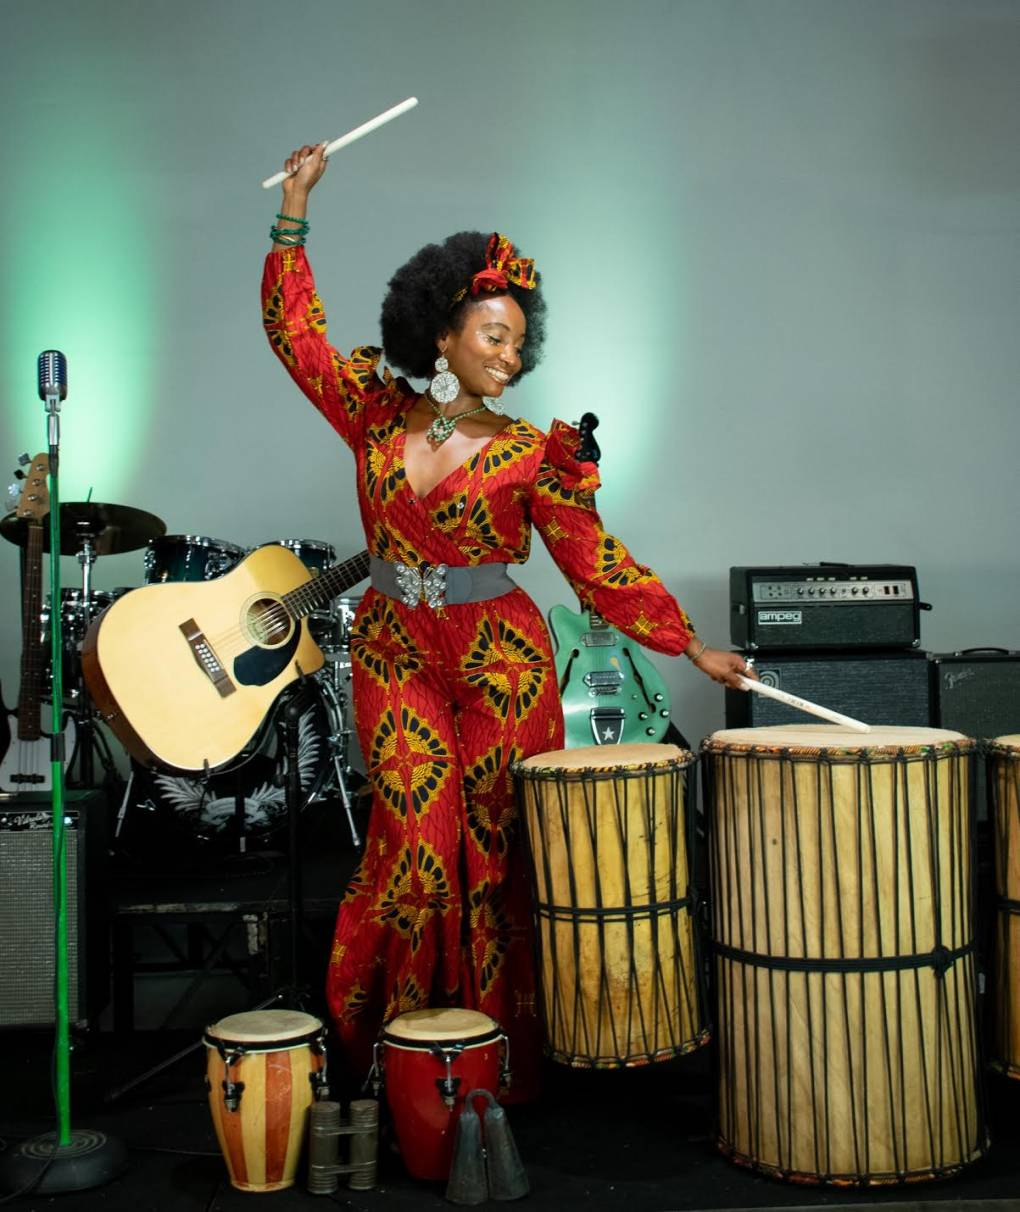 Queen Iminah plays the drums while wearing a guitar over her shoulder.